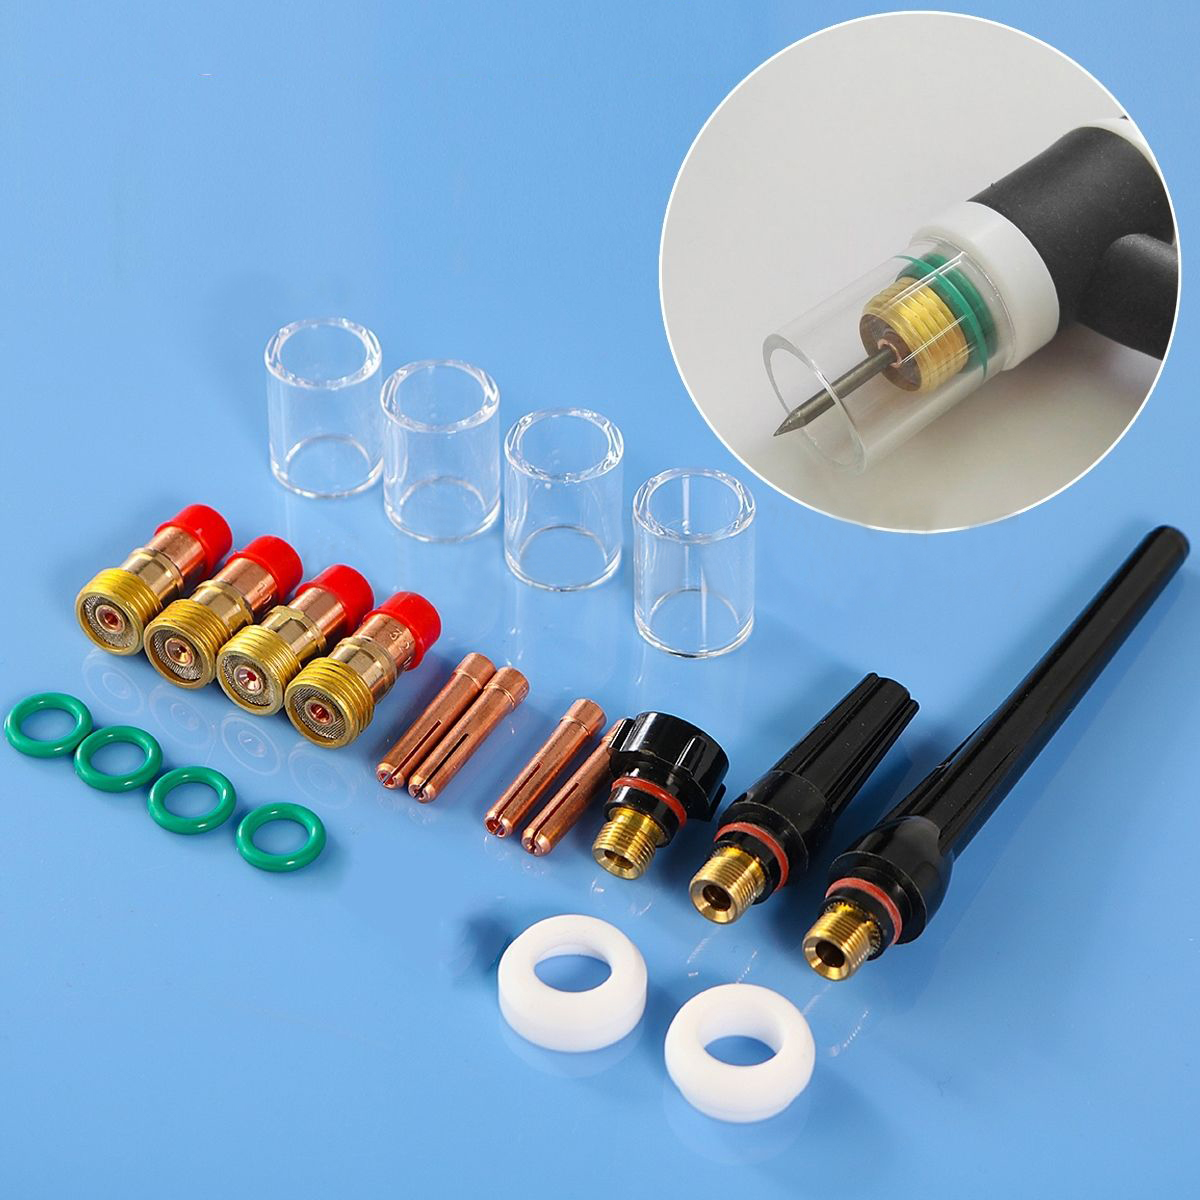 21pcs Durable TIG Welding Torch Stubby Gas Lens #10 16mm Pyrex Cup Kit for WP-17/18/26 Torch Precise Mayitr Tig Welding Kit mayitr 5pcs tig welding accessories pyrex cup gas saver welding torch kit for 1 6mm 1 16 torch wp17 18 26 parts